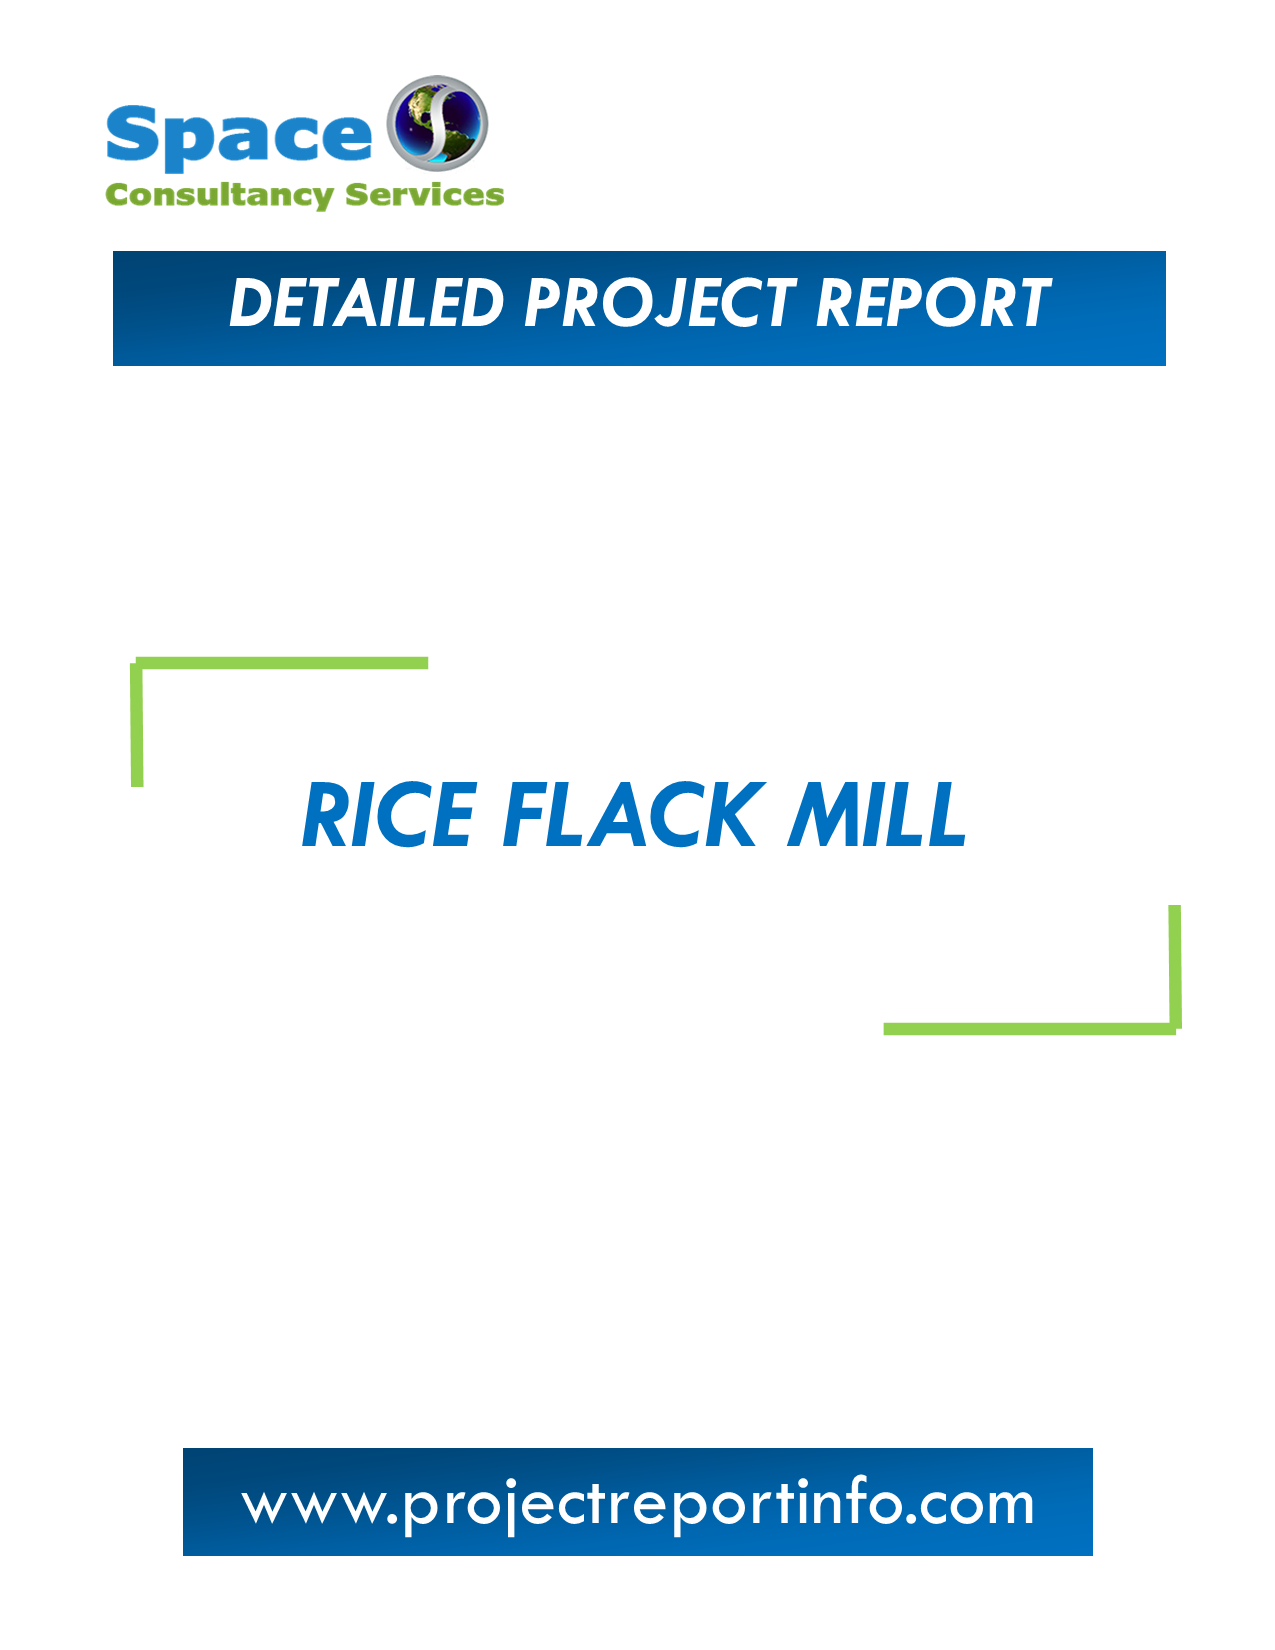 Project Report on Rice Flack Mill